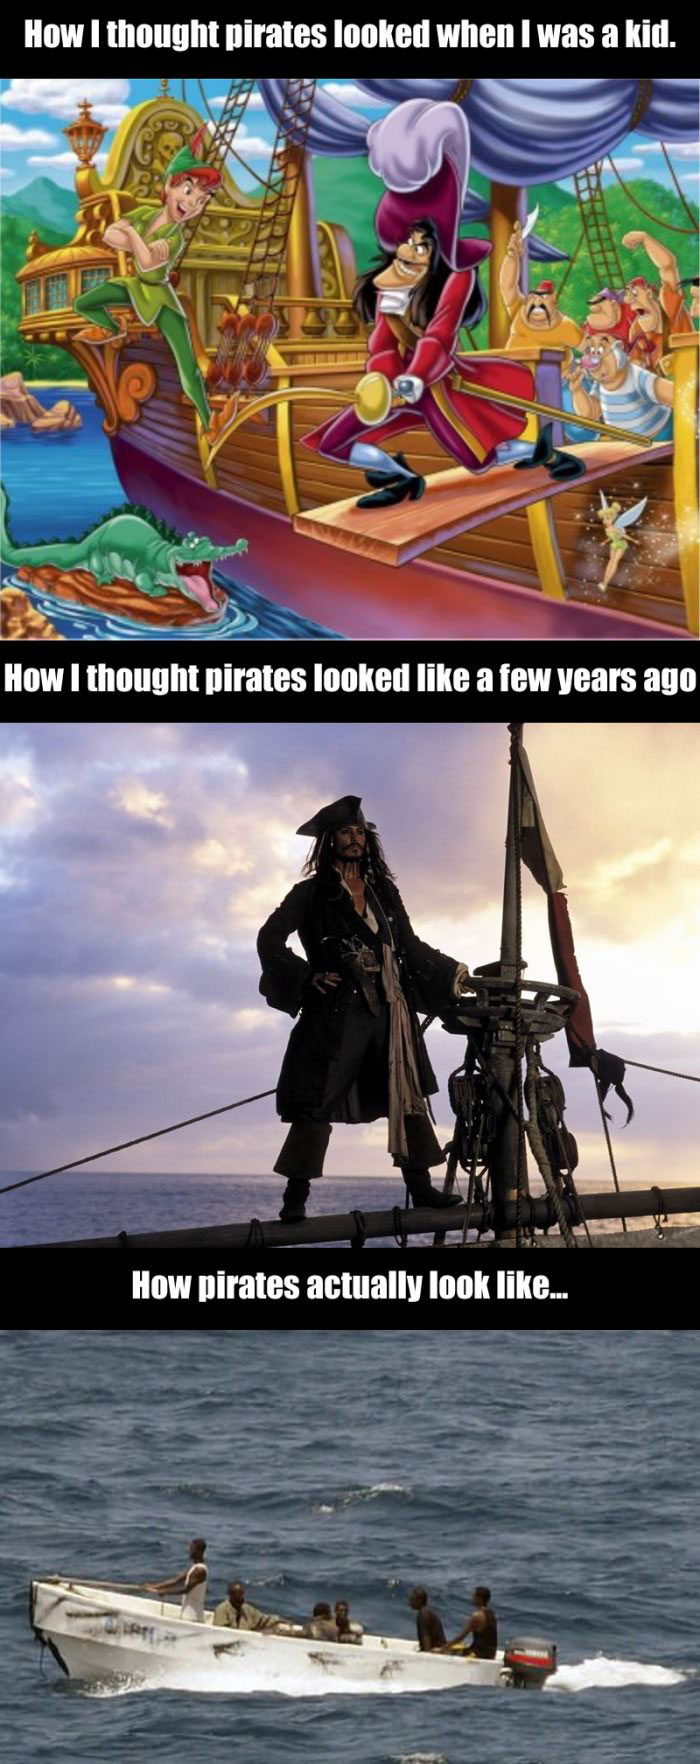 pirate, expectation, reality, cartoon, pirates of the caribbean, somalia